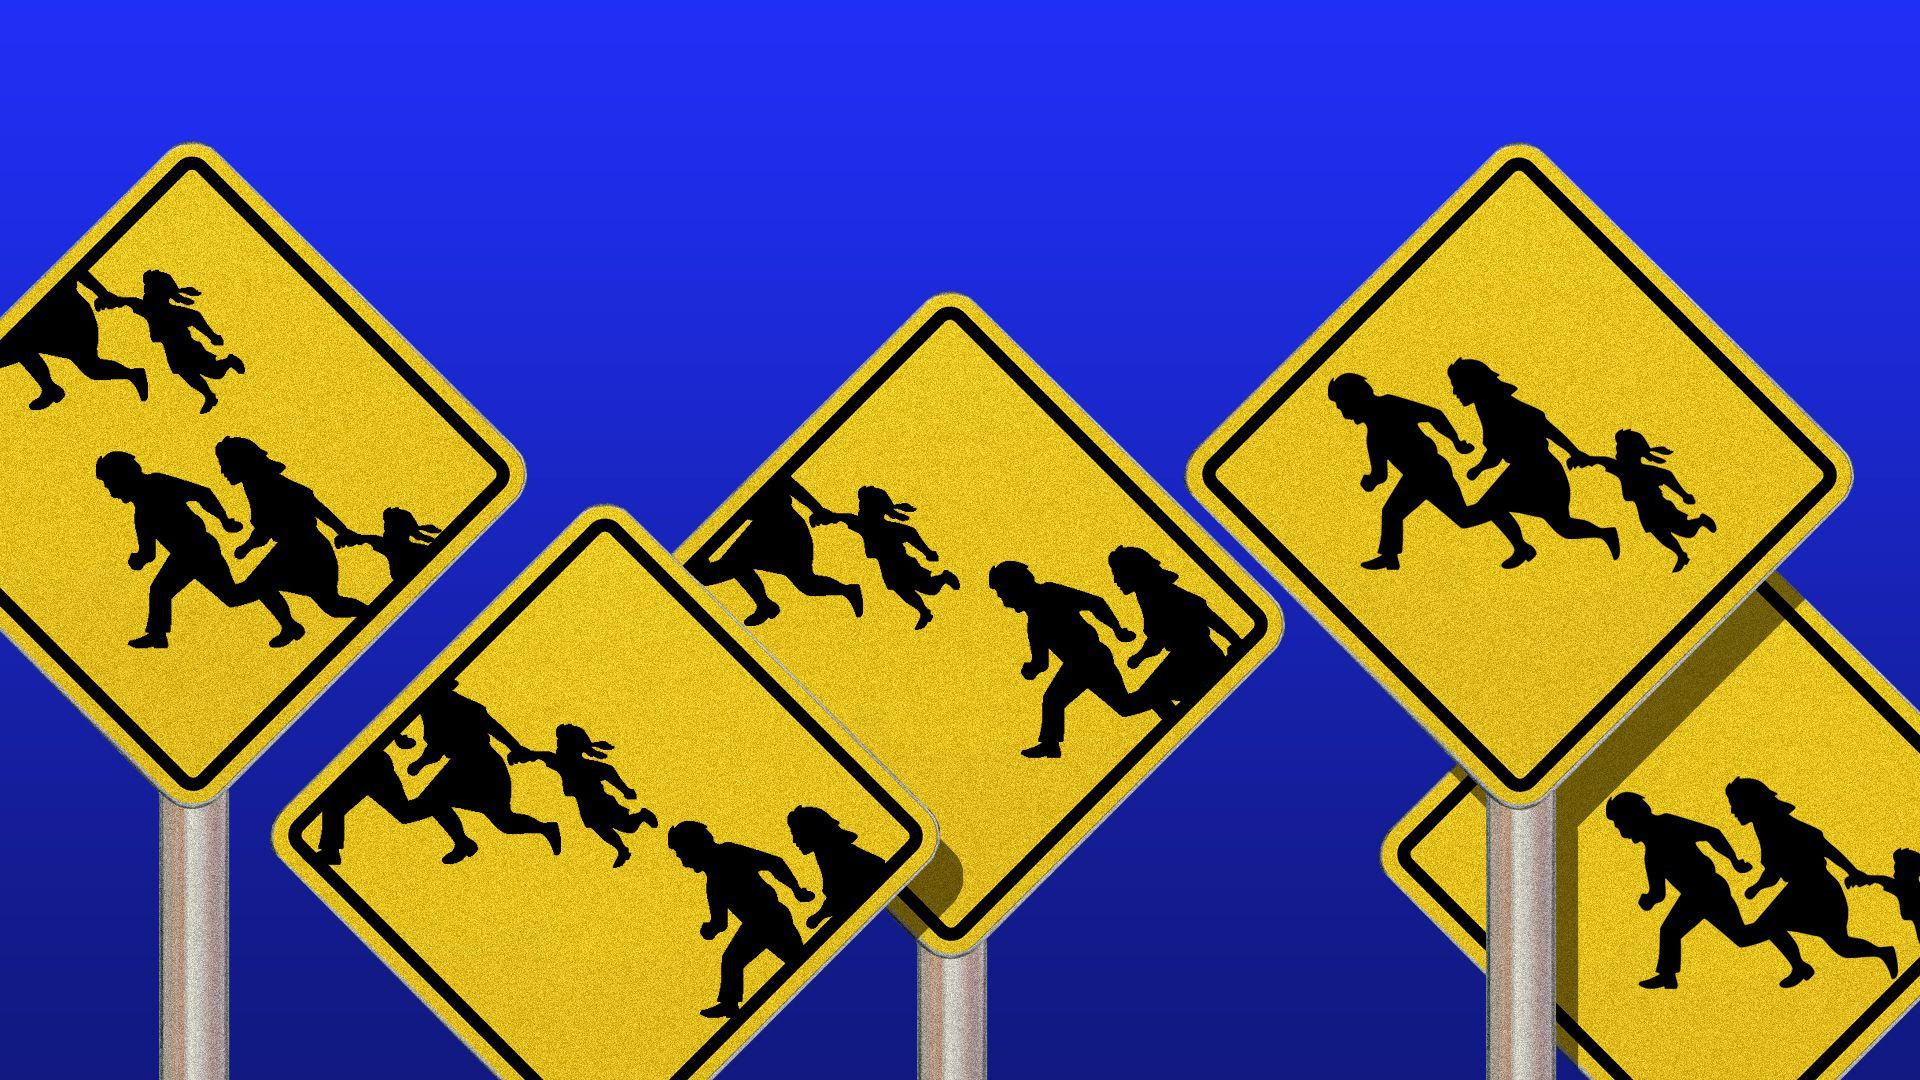 Illustration of yield signs showing running kids